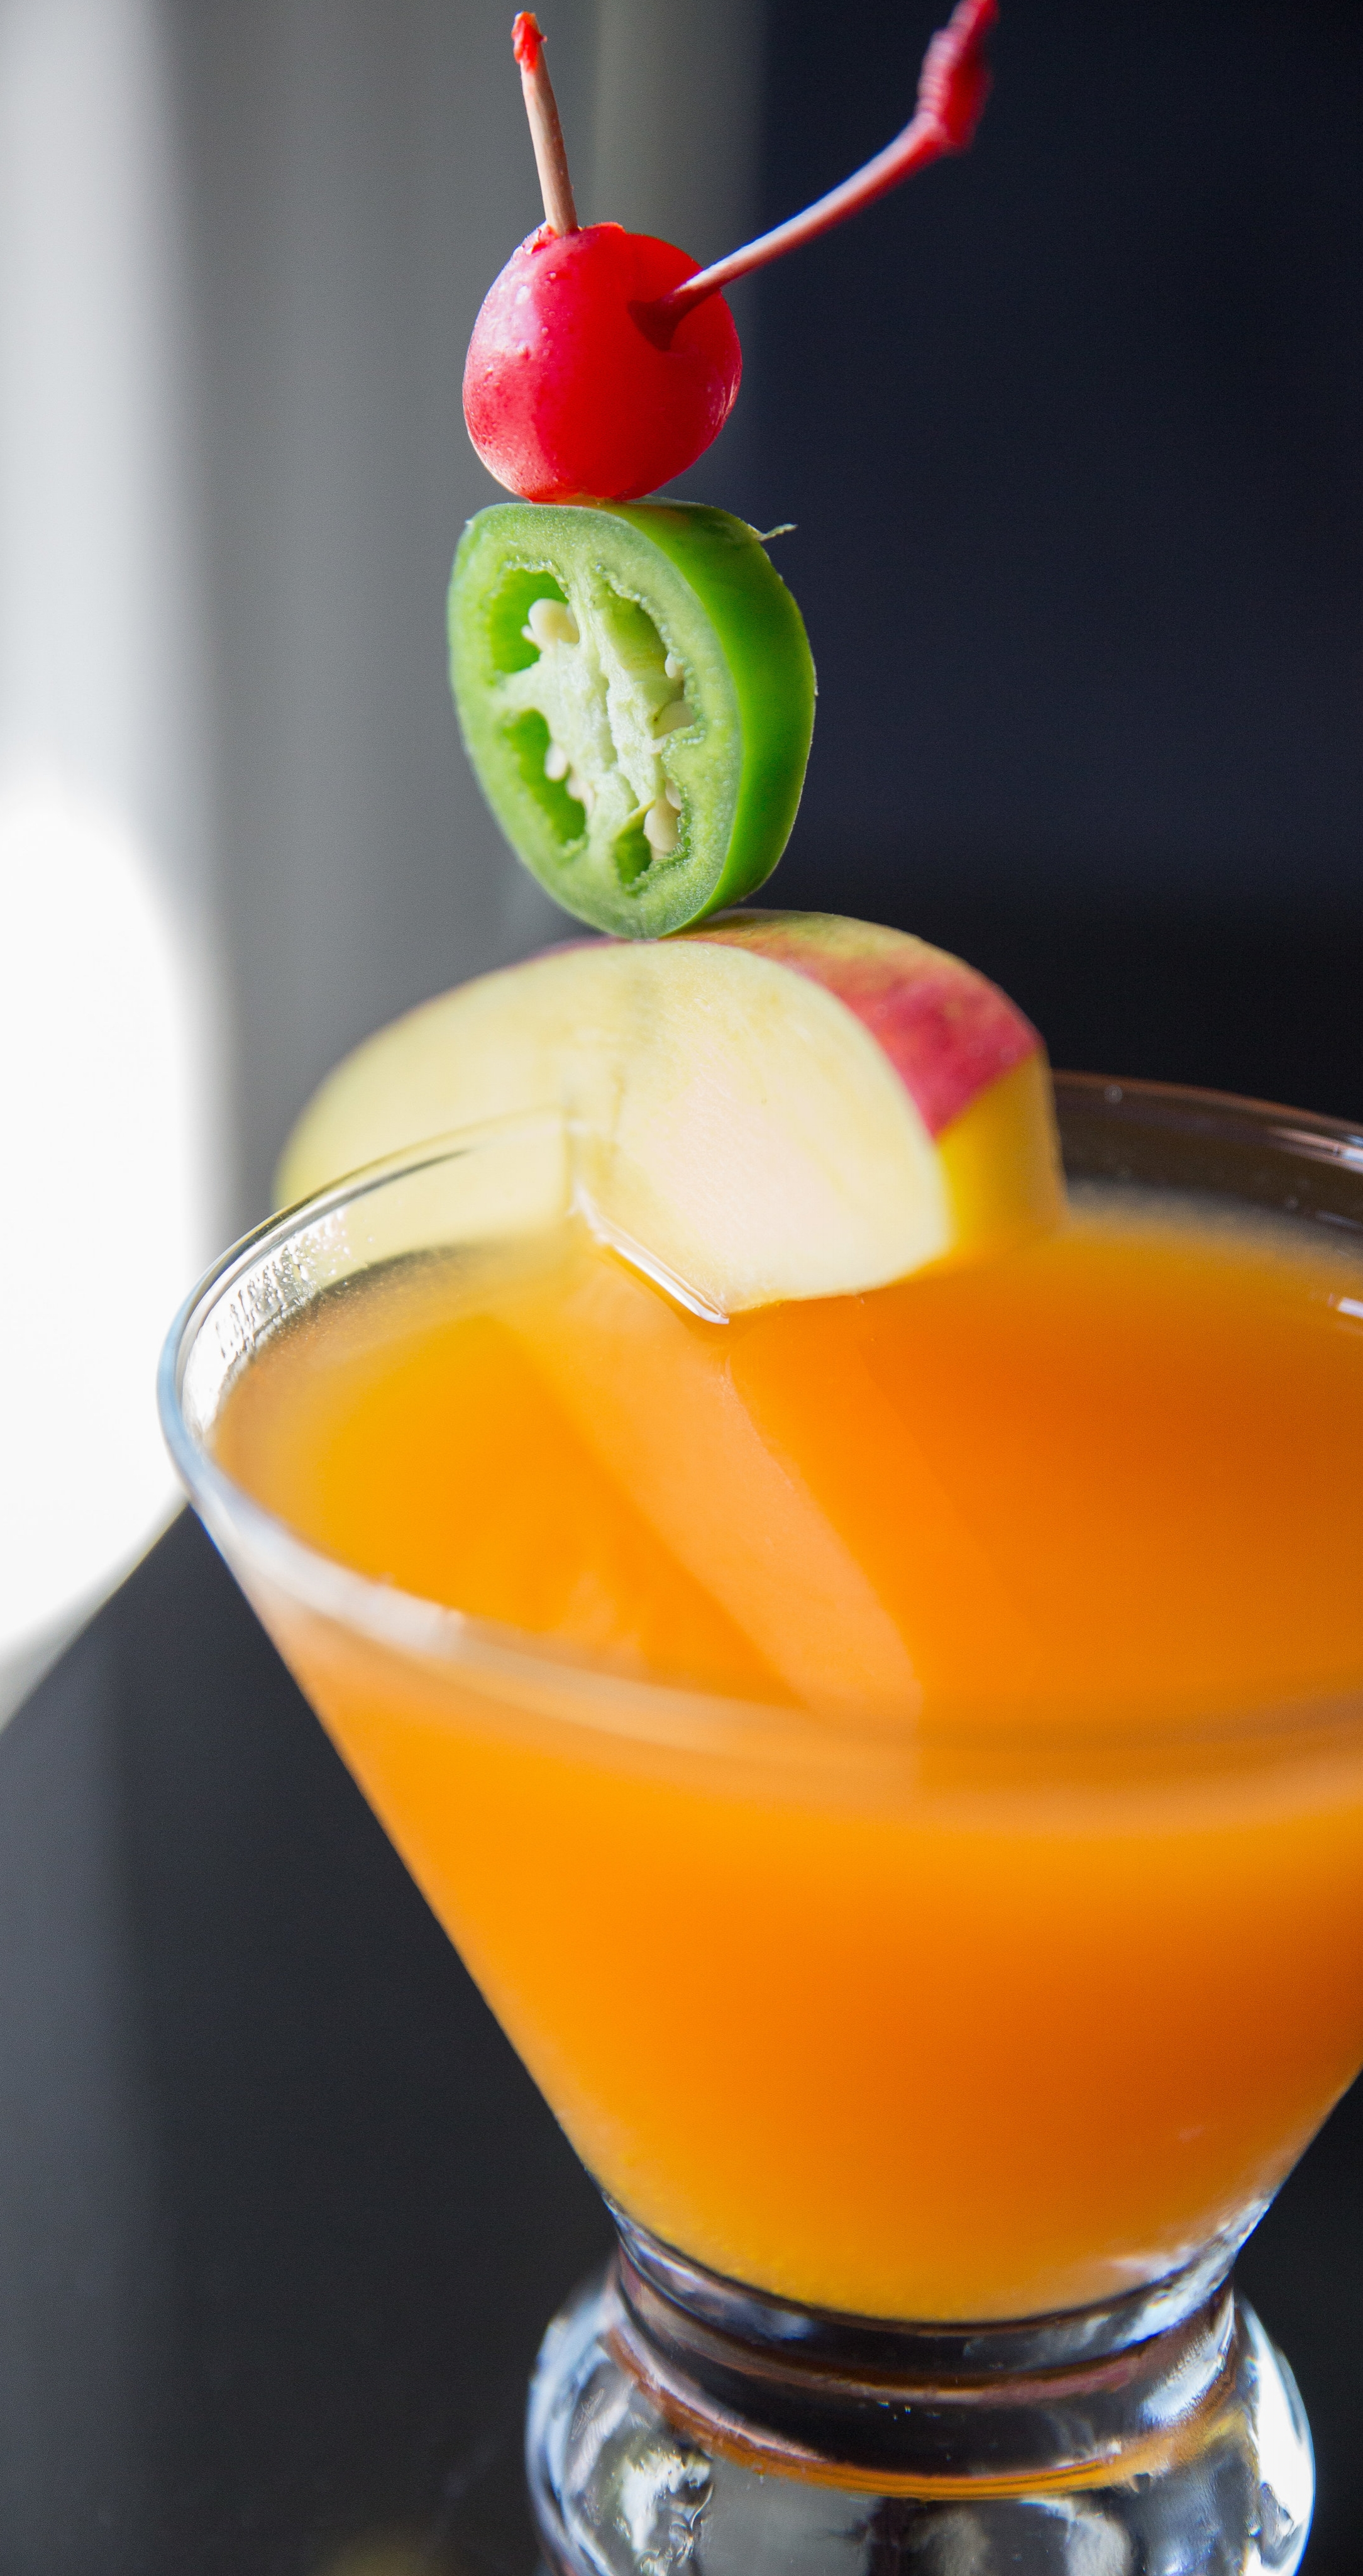 Long Islander News photos/Jano Tantongco  The Jalapeno Mango Martini features Absolut vodka infused in-house with jalapenos, mango puree and fresh lime juice, for a refreshing drink with a hint of spiciness.